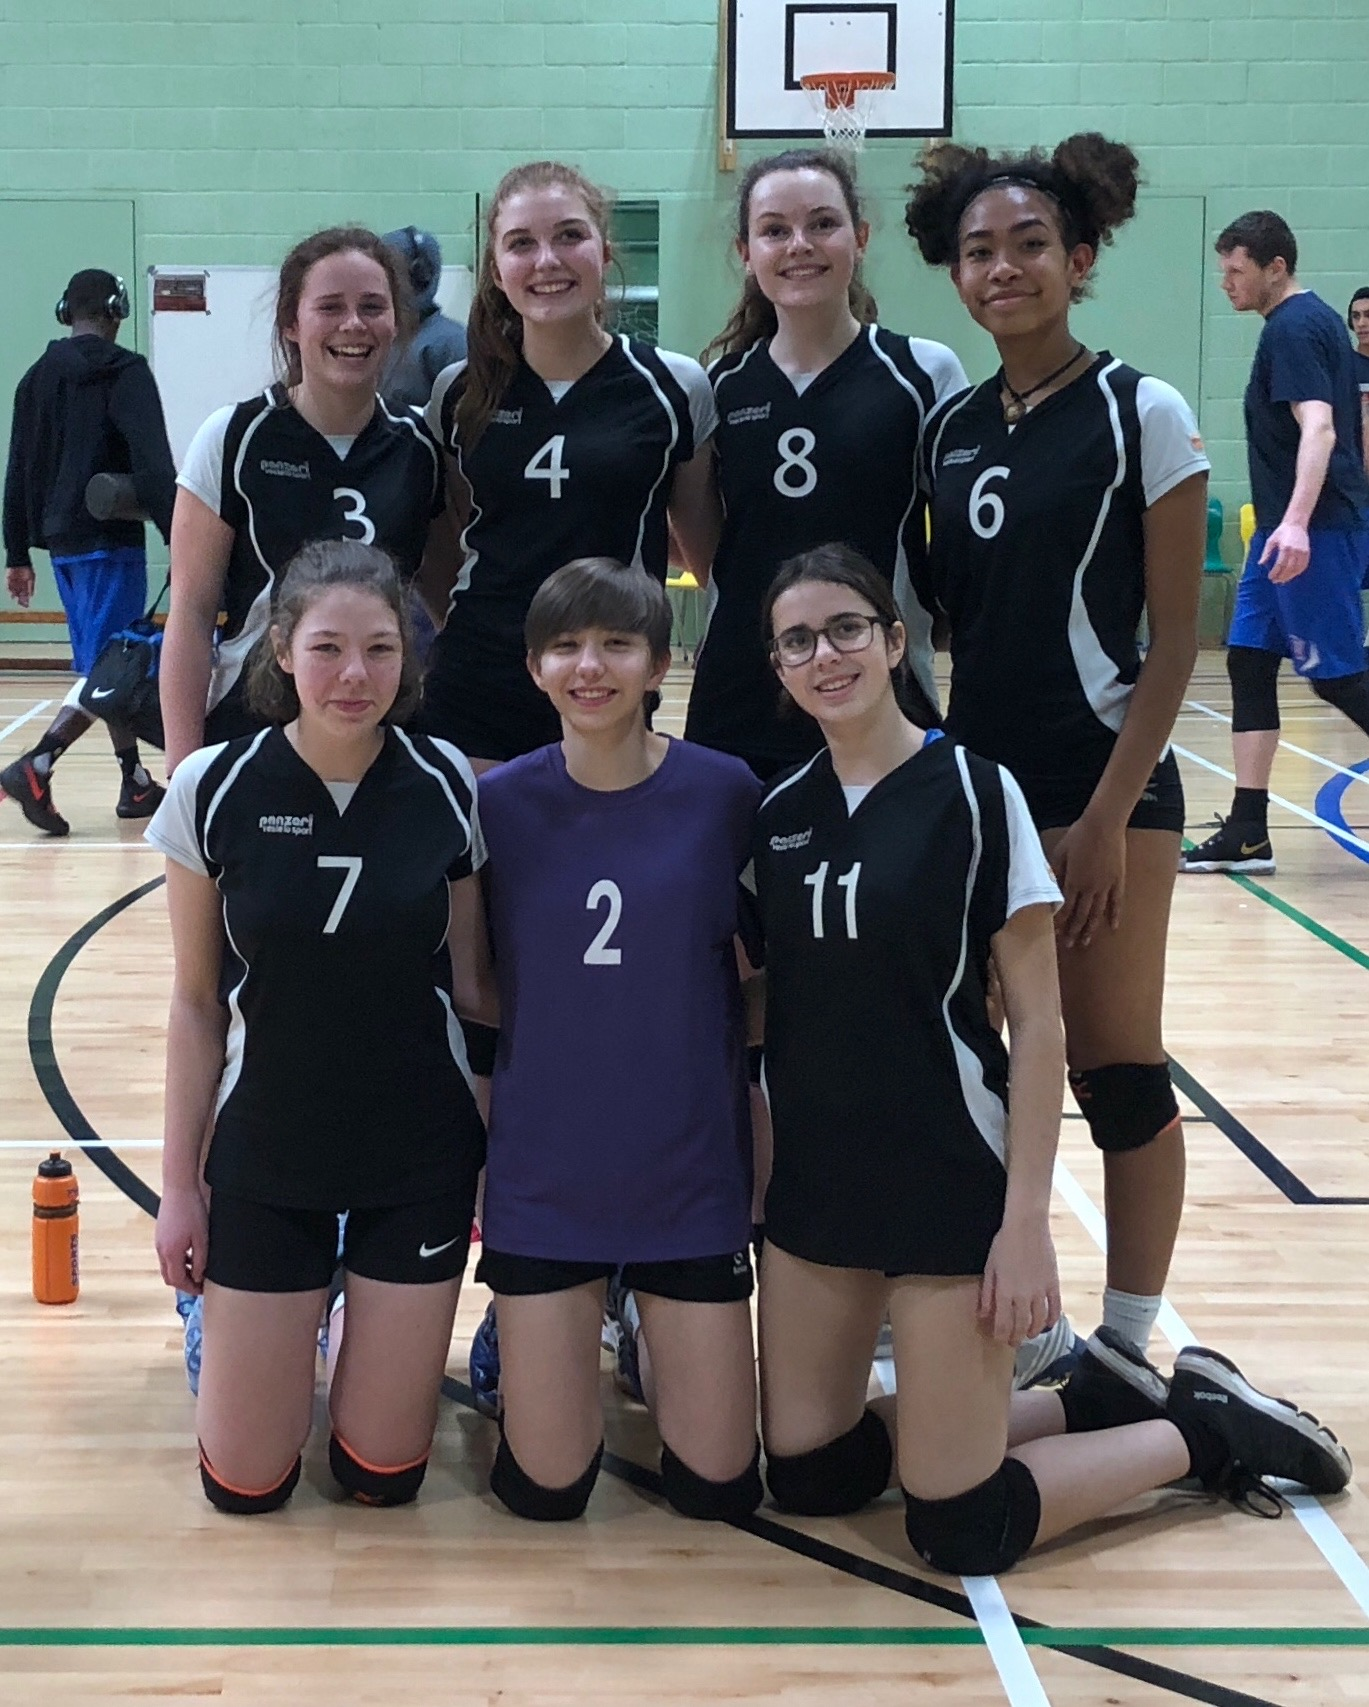 QUALIFIED: Pictured, back row - Kaja Jankowski, Catherine Tolley, Georgia McGovern, Tejah Mossman; front row - Bethan Bailey, Maddie Booker, Amy Hart.